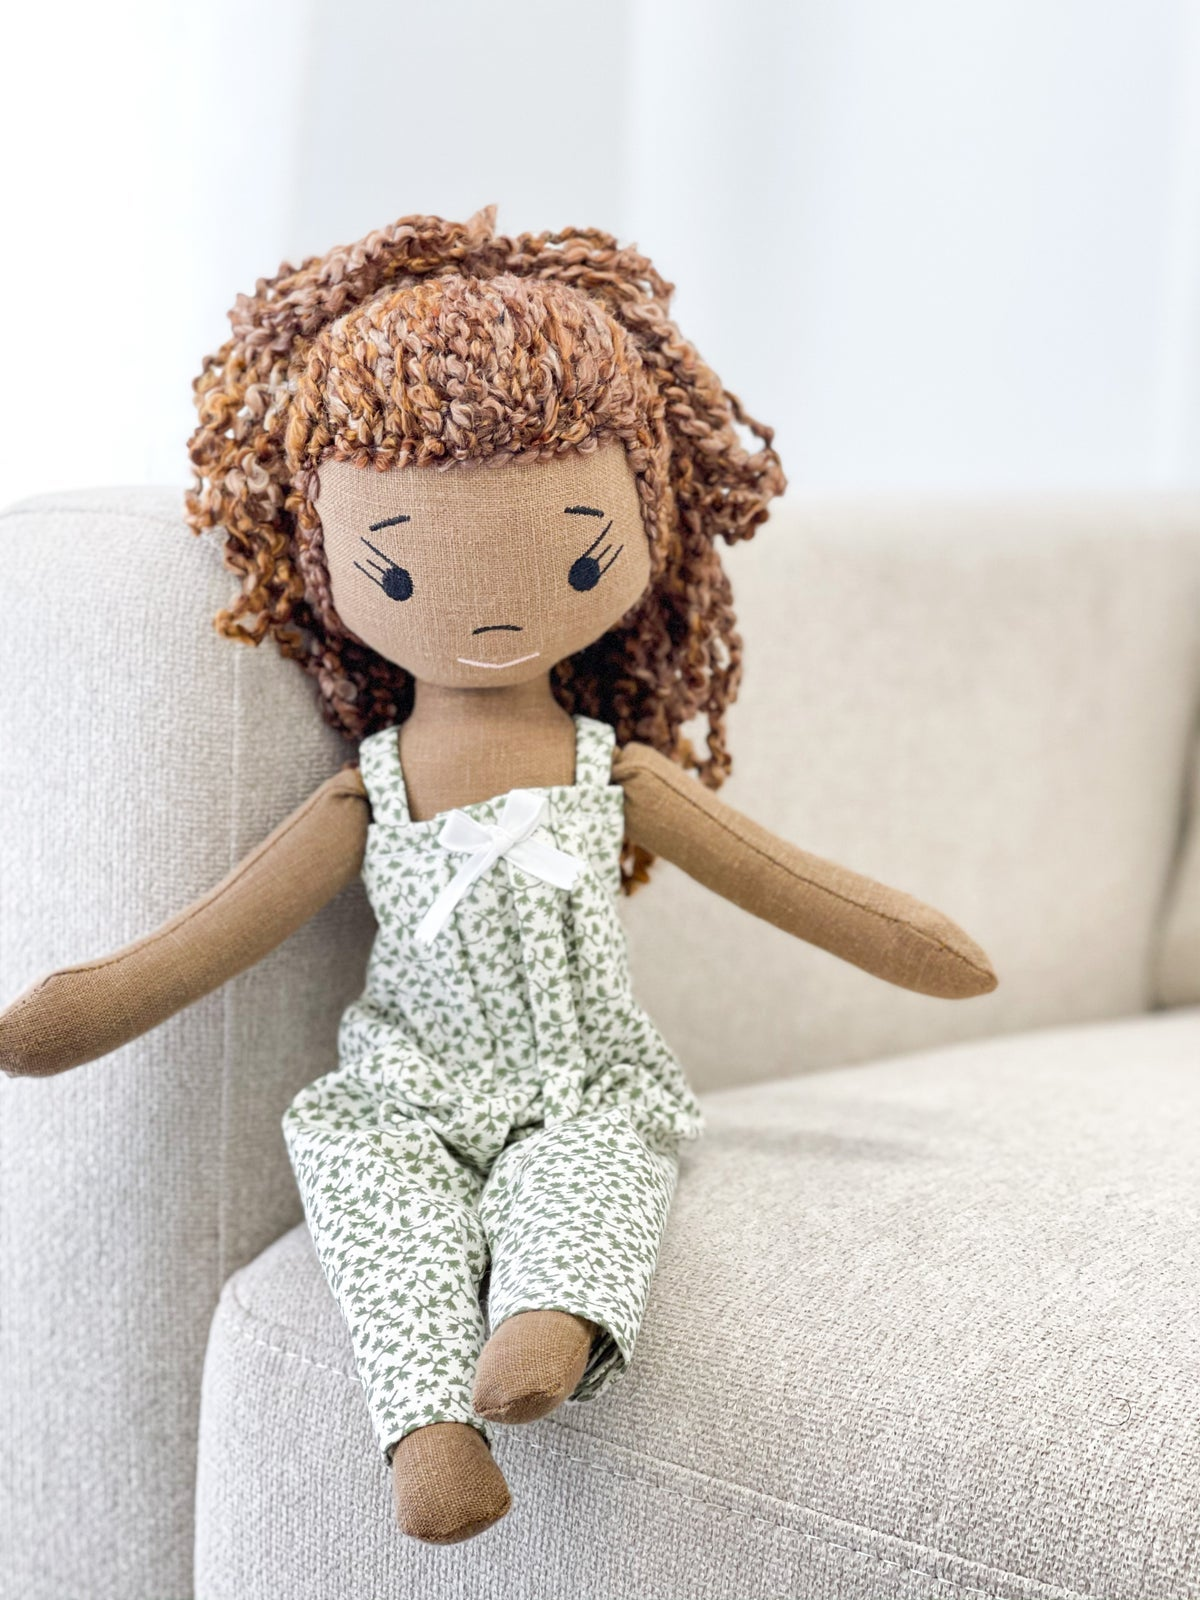 Luna Handmade Linen Doll (SHIP DATE: ON OR BEFORE MARCH 15TH)